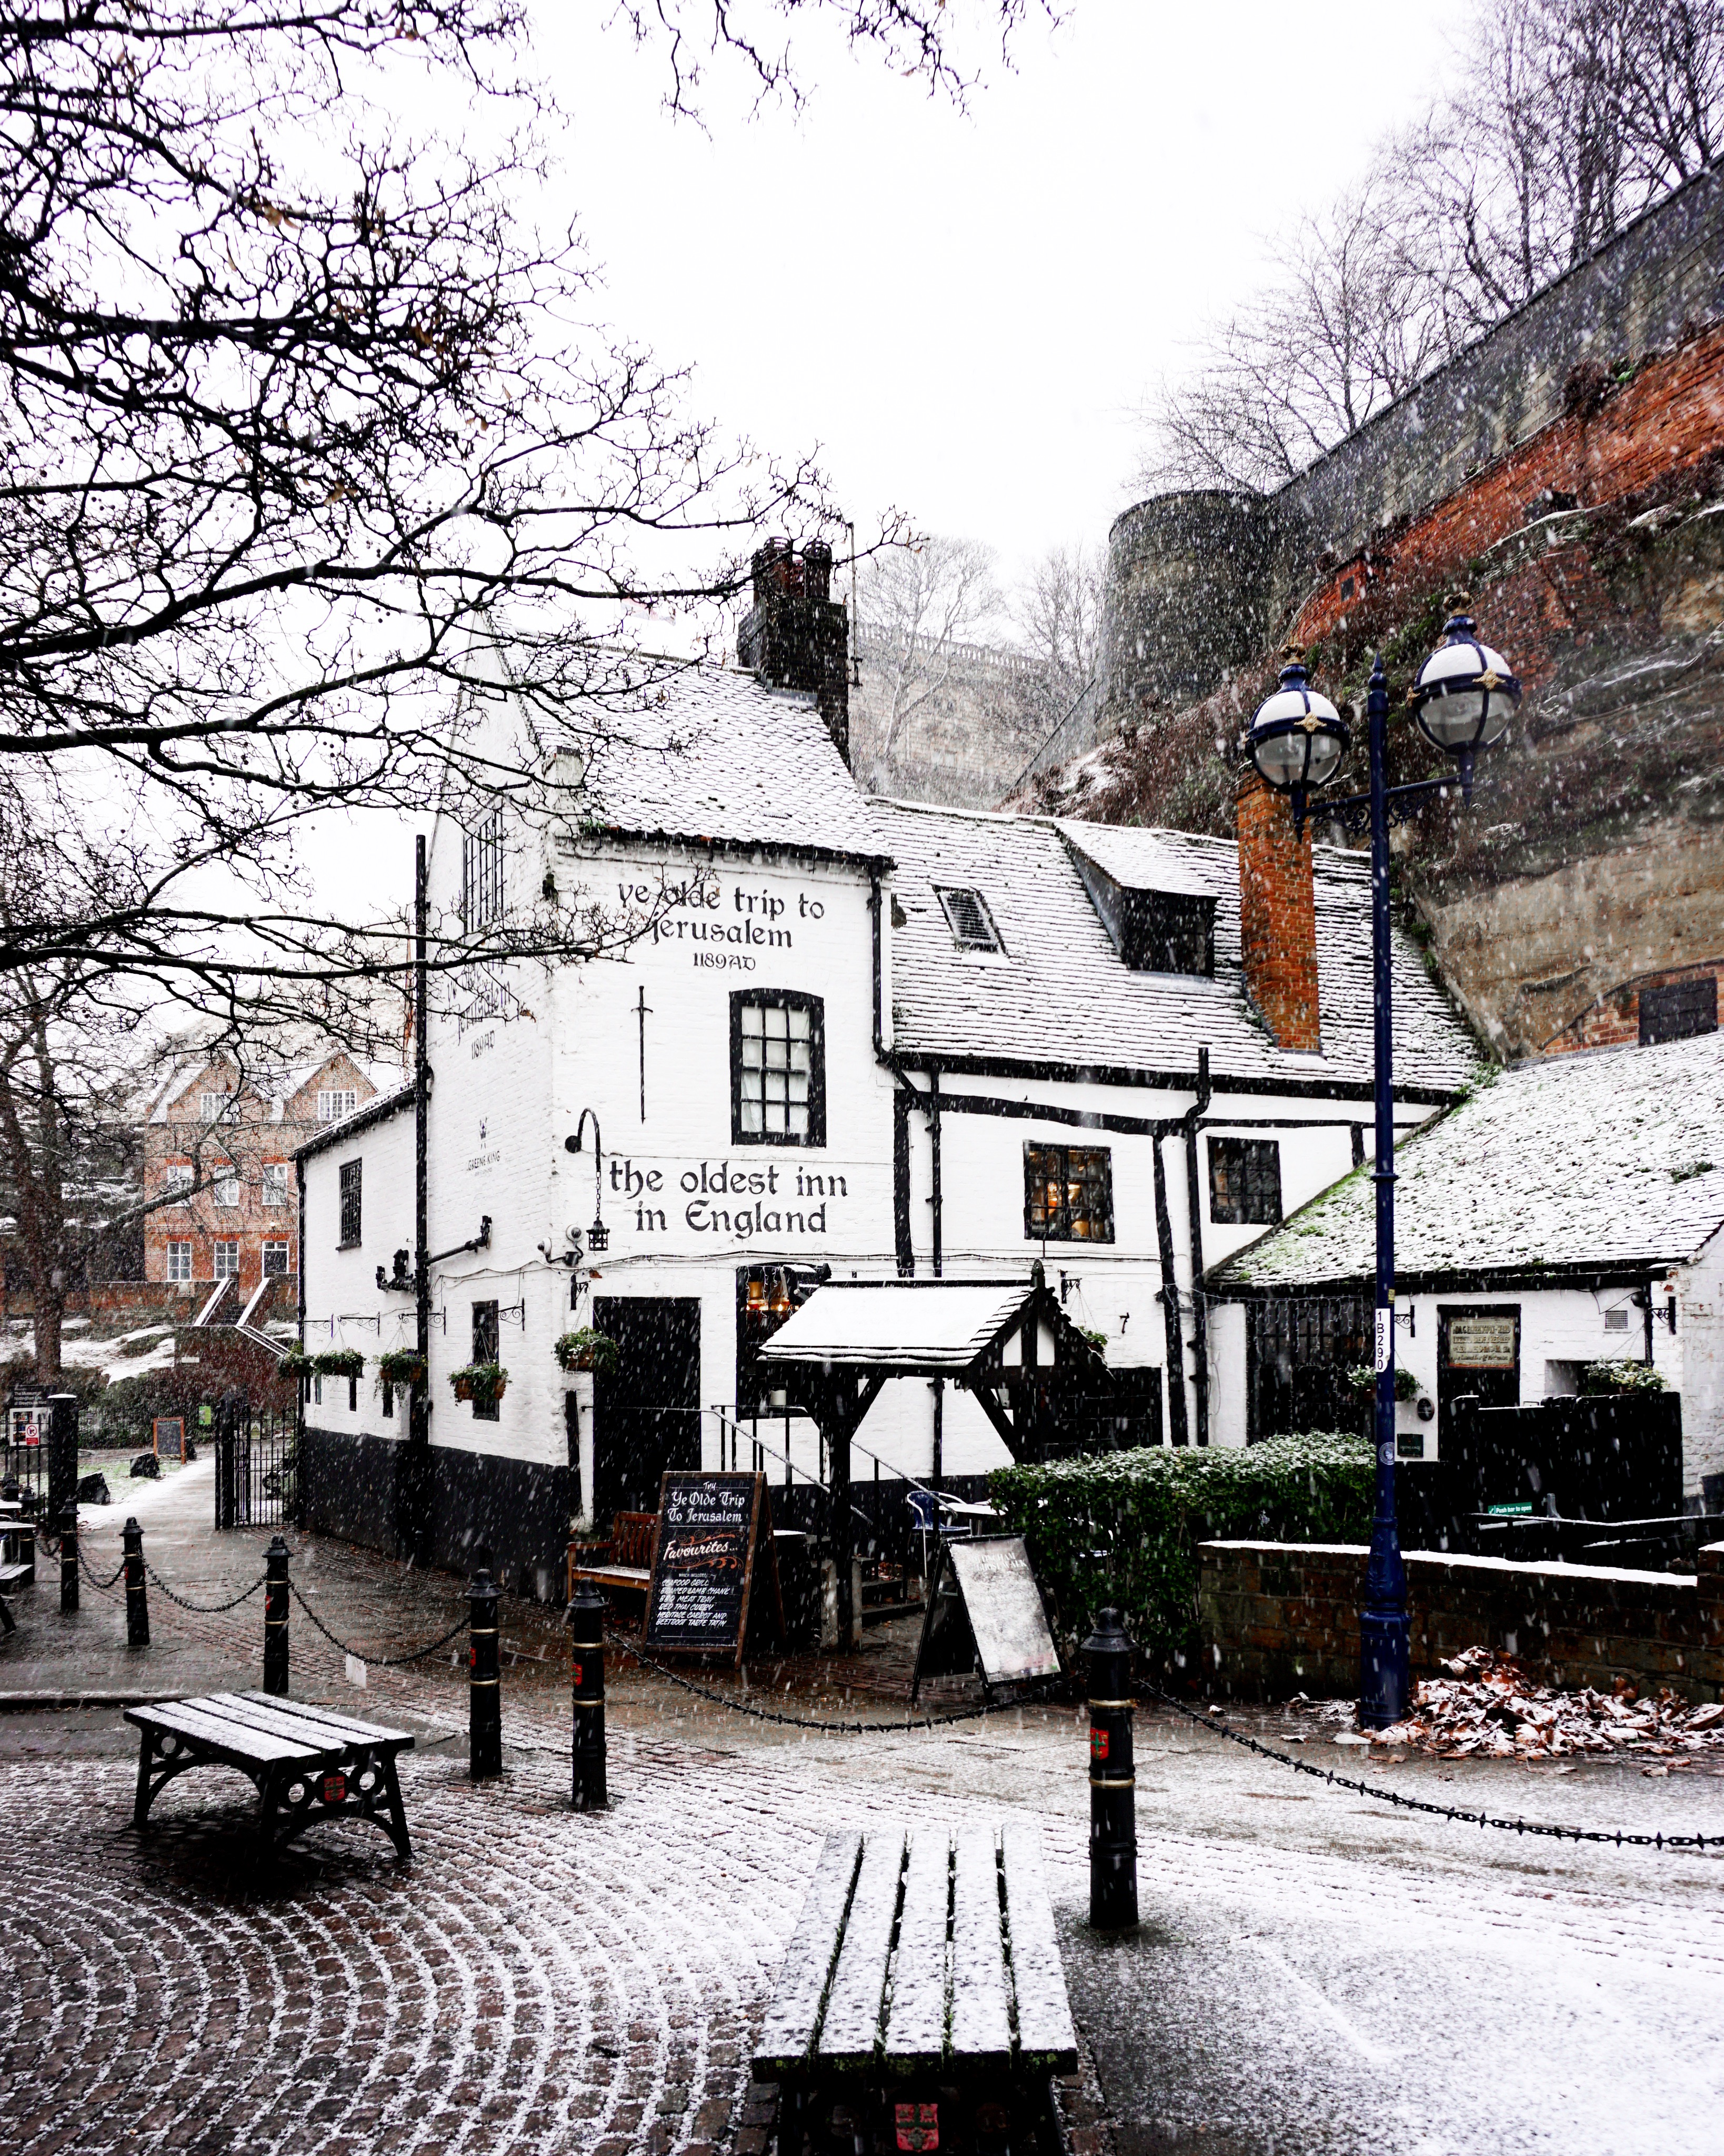 The oldest pub in the UK